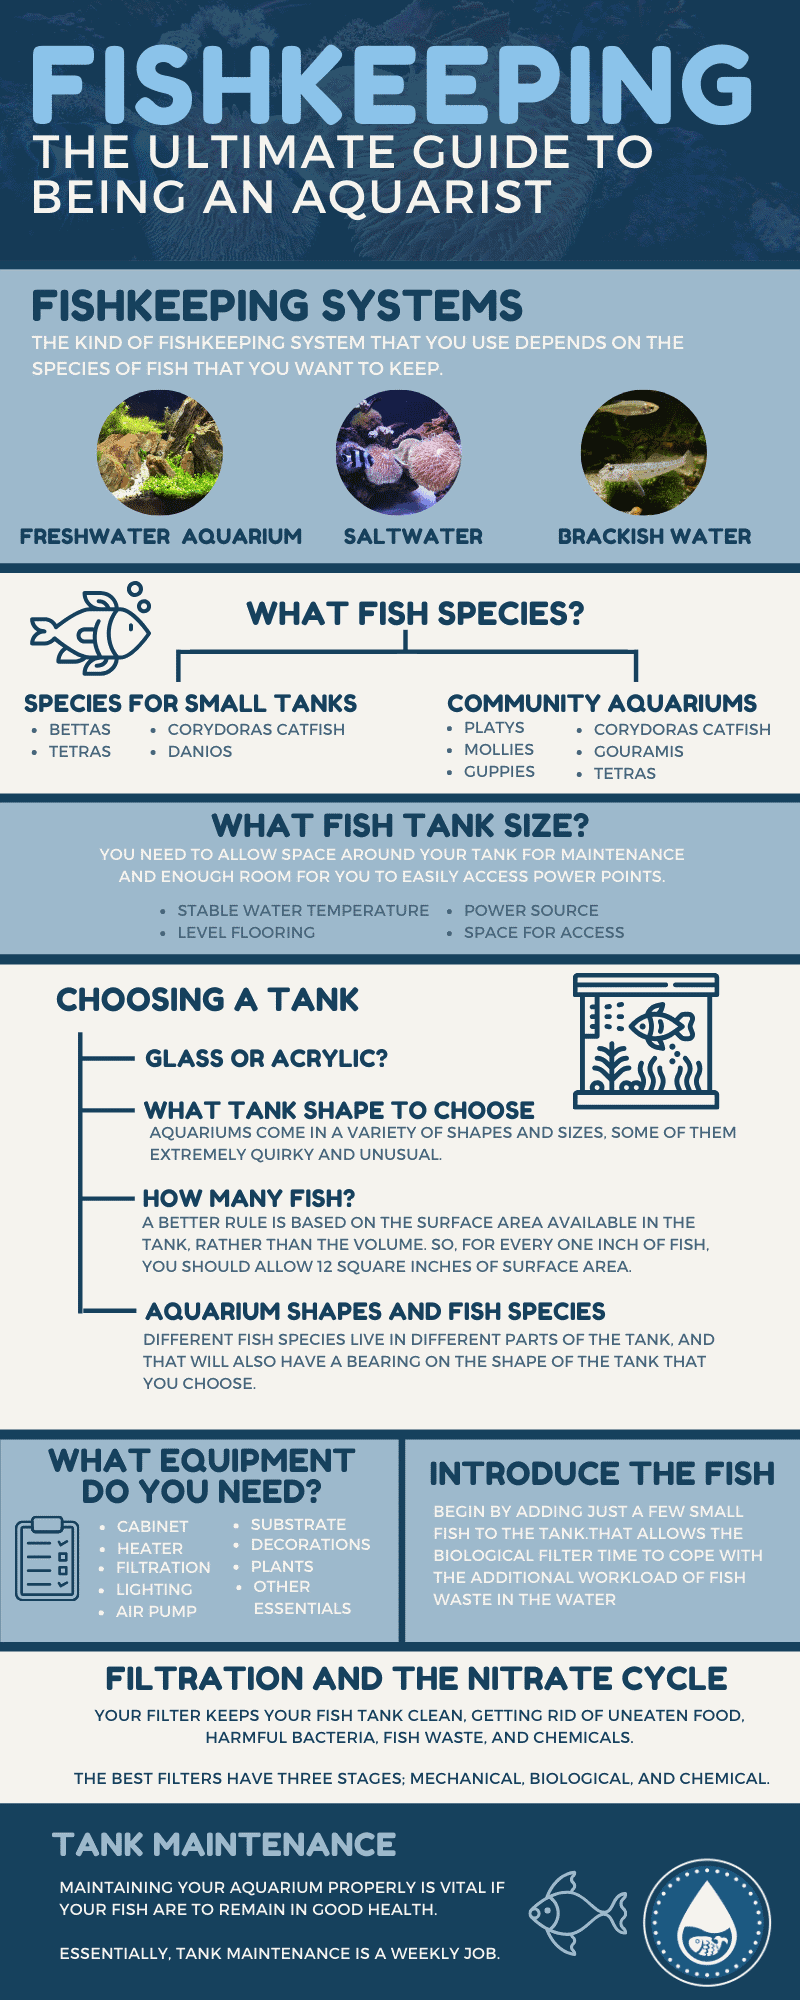 Fishkeeping - The Ultimate Guide to Being an Aquarist - infographics